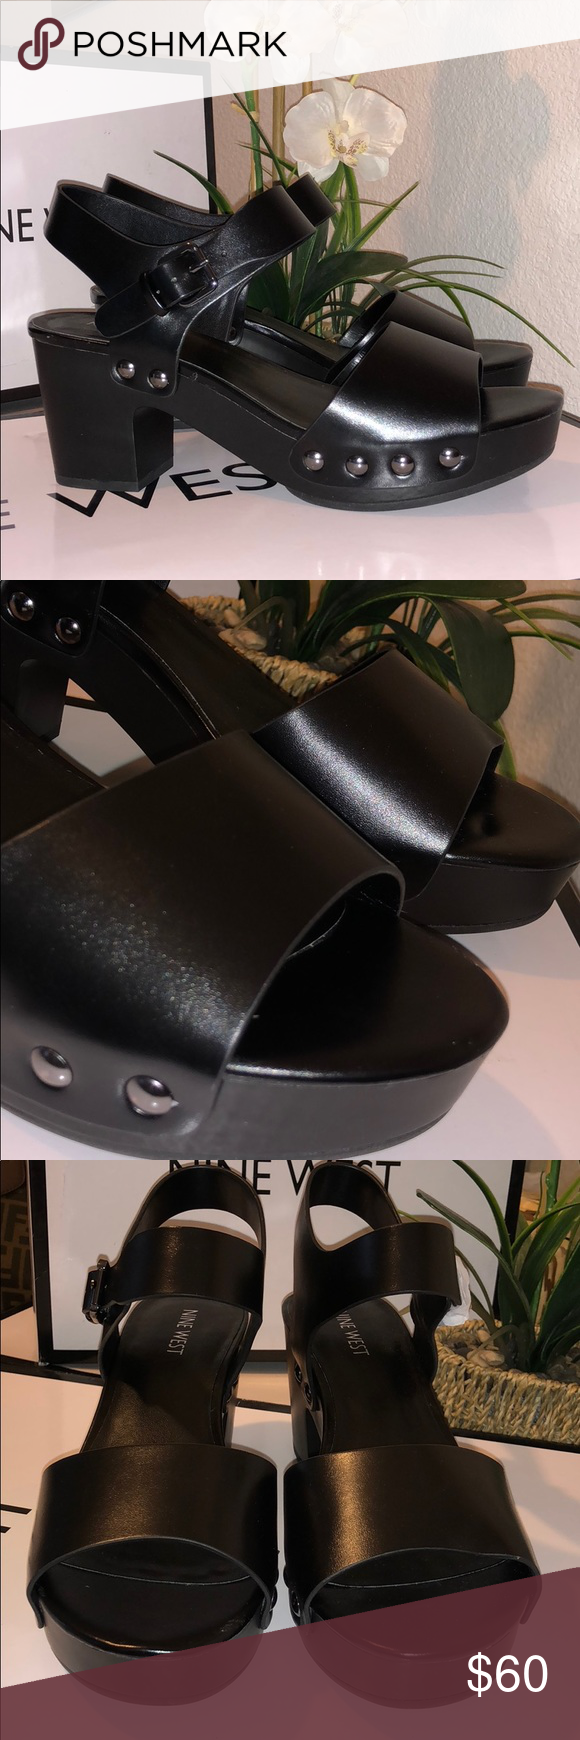 "818560d94ea Nine West ""Cecilia"" platforms Brand new with box. Cute platforms with  studded detail. 3 inch heel. Nine West Shoes Platforms"